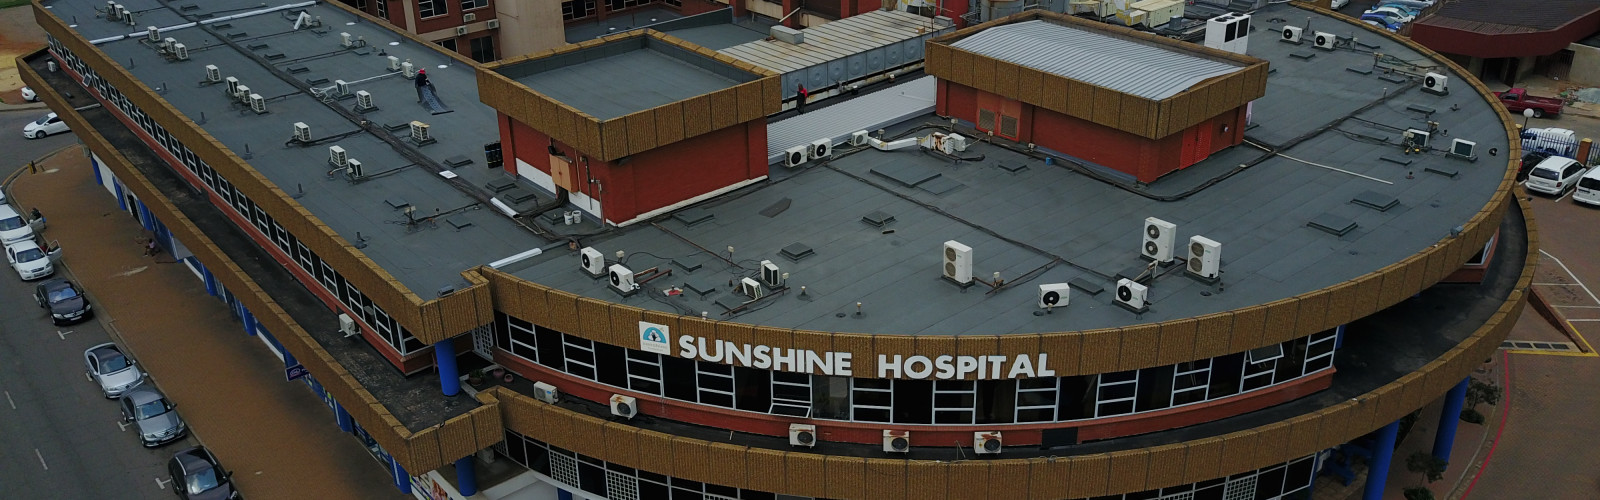 Image of Sunshine Hospital Roof Waterproofing